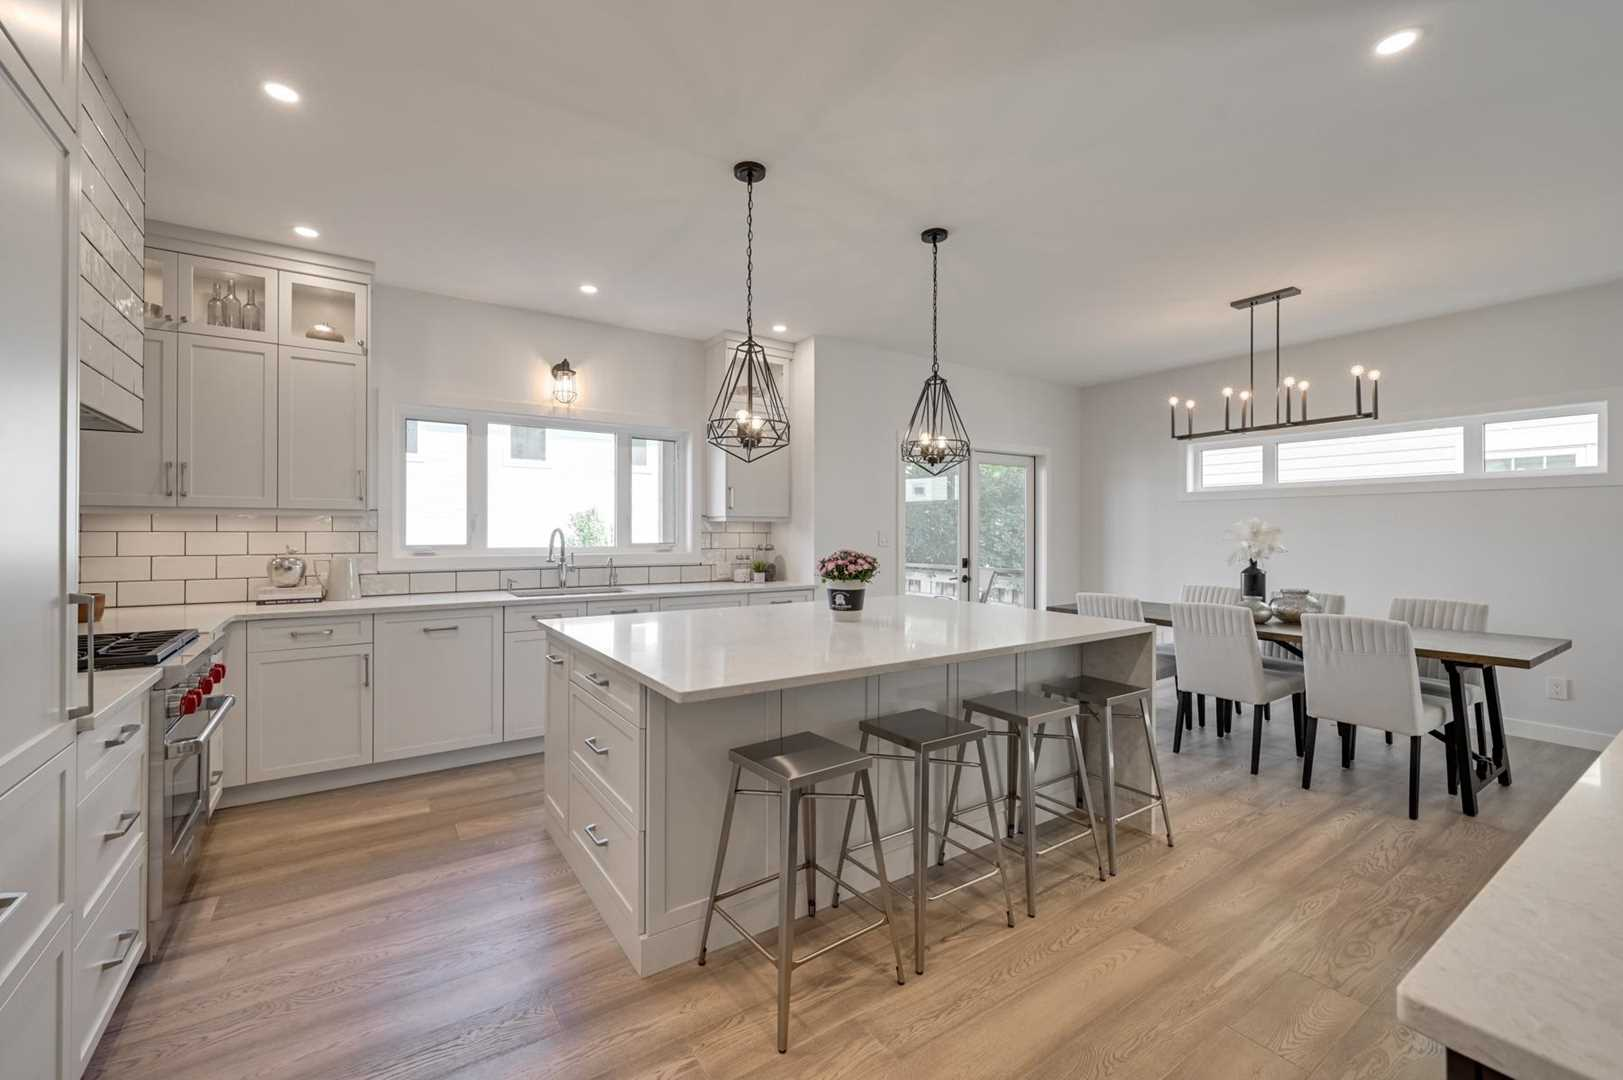 Interior kitchen, light hardwood floor, white ceiling and walls; four steel stools at white waterfall island, two light hanging overhead; white cupboards and pantry to left